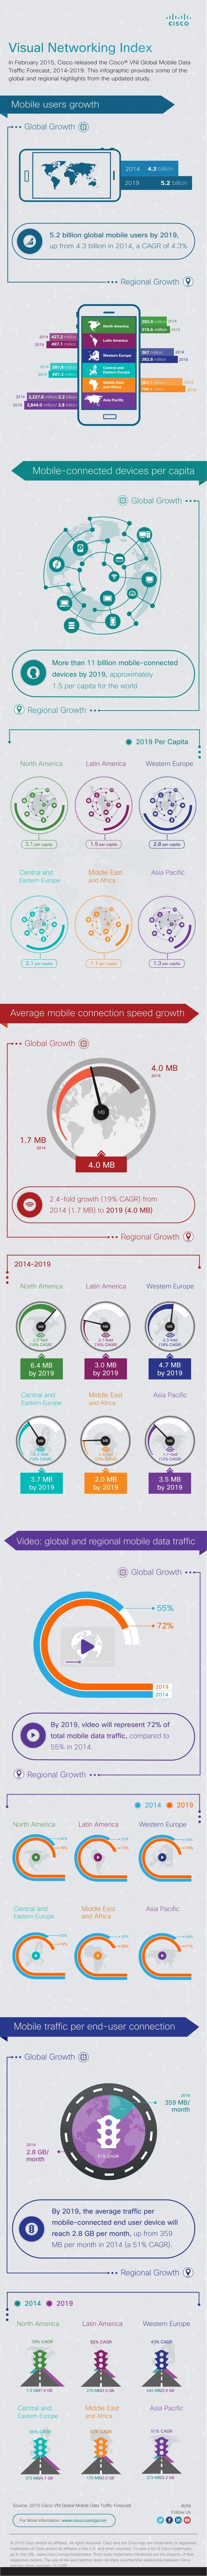 Cisco Mobile VNI 2015: 10x data increase in the next five years